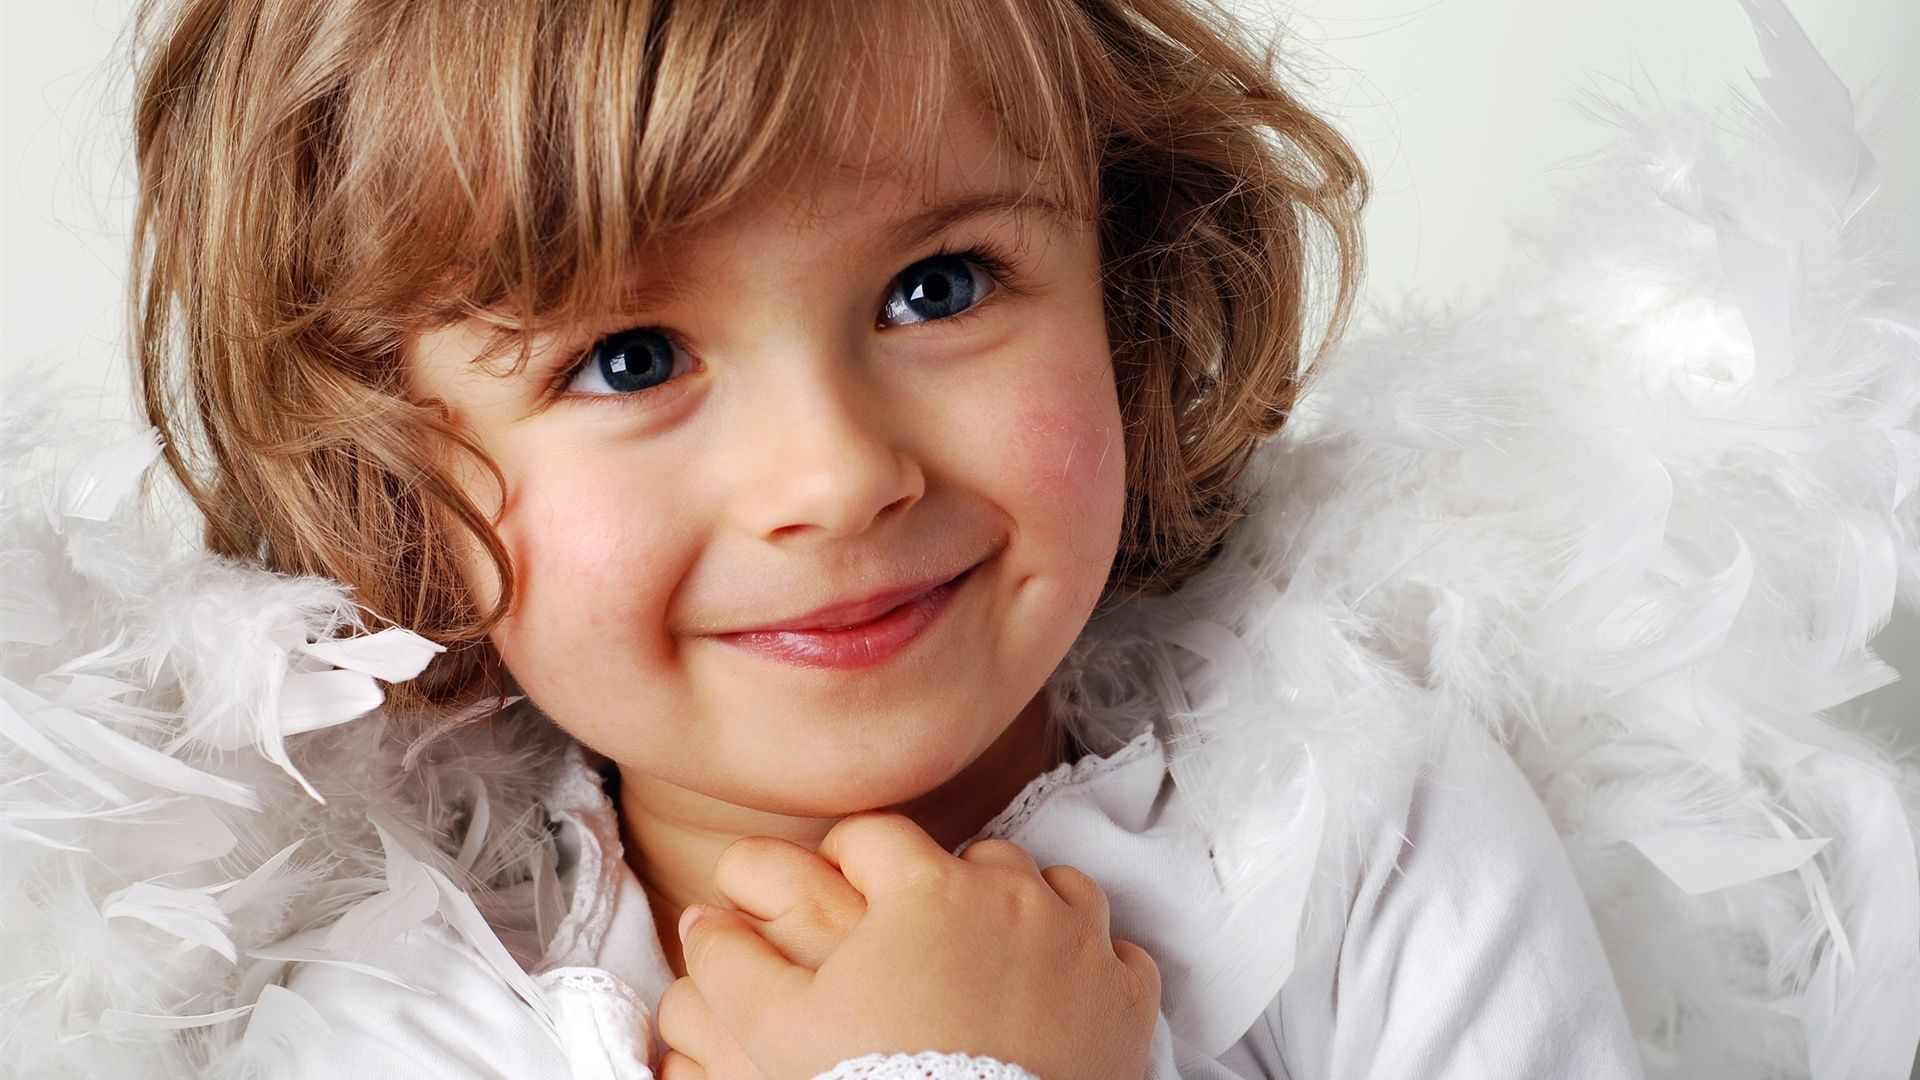 cute little girl sweet smile hd wallpaper | children | pinterest